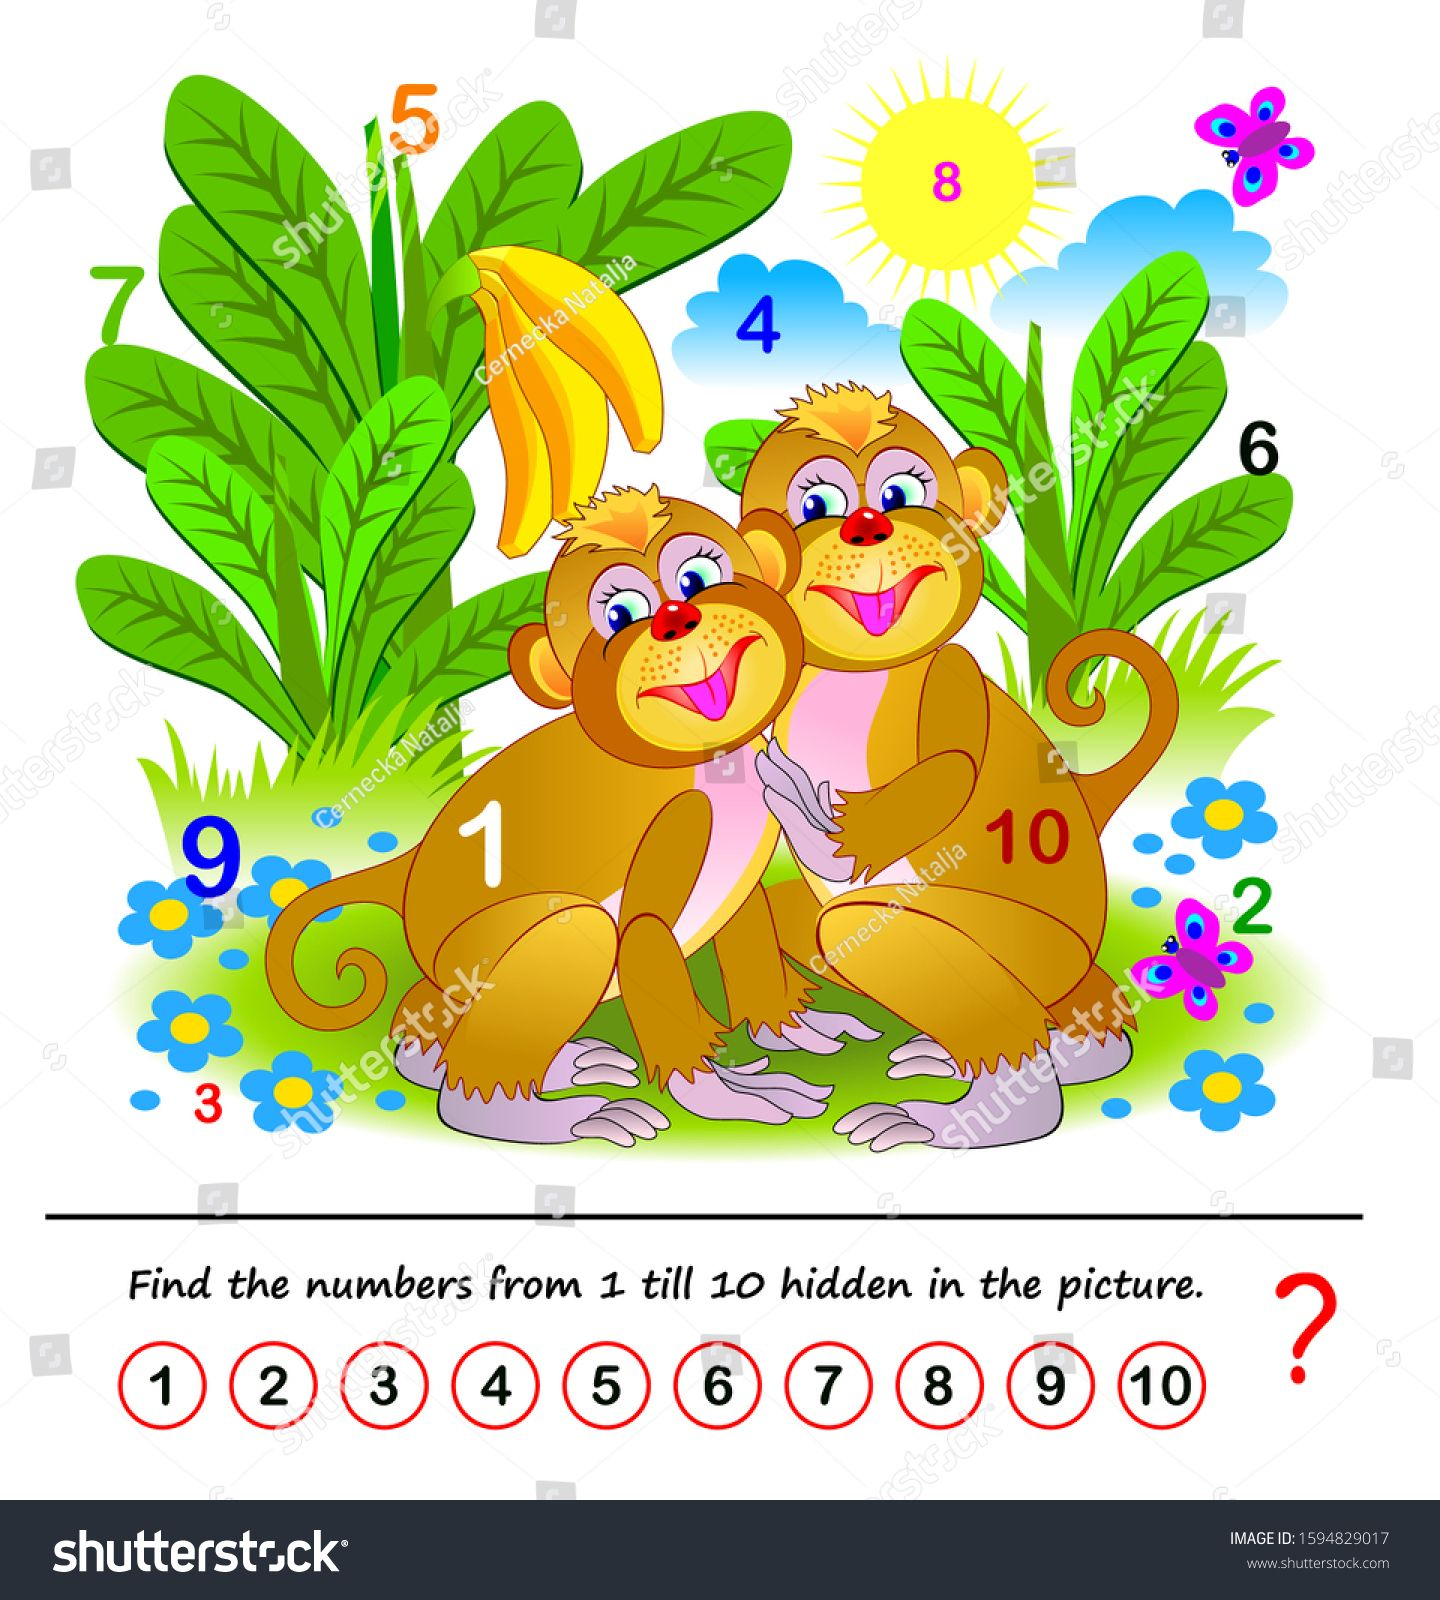 Math Education For Children Logic Puzzle Game Find The